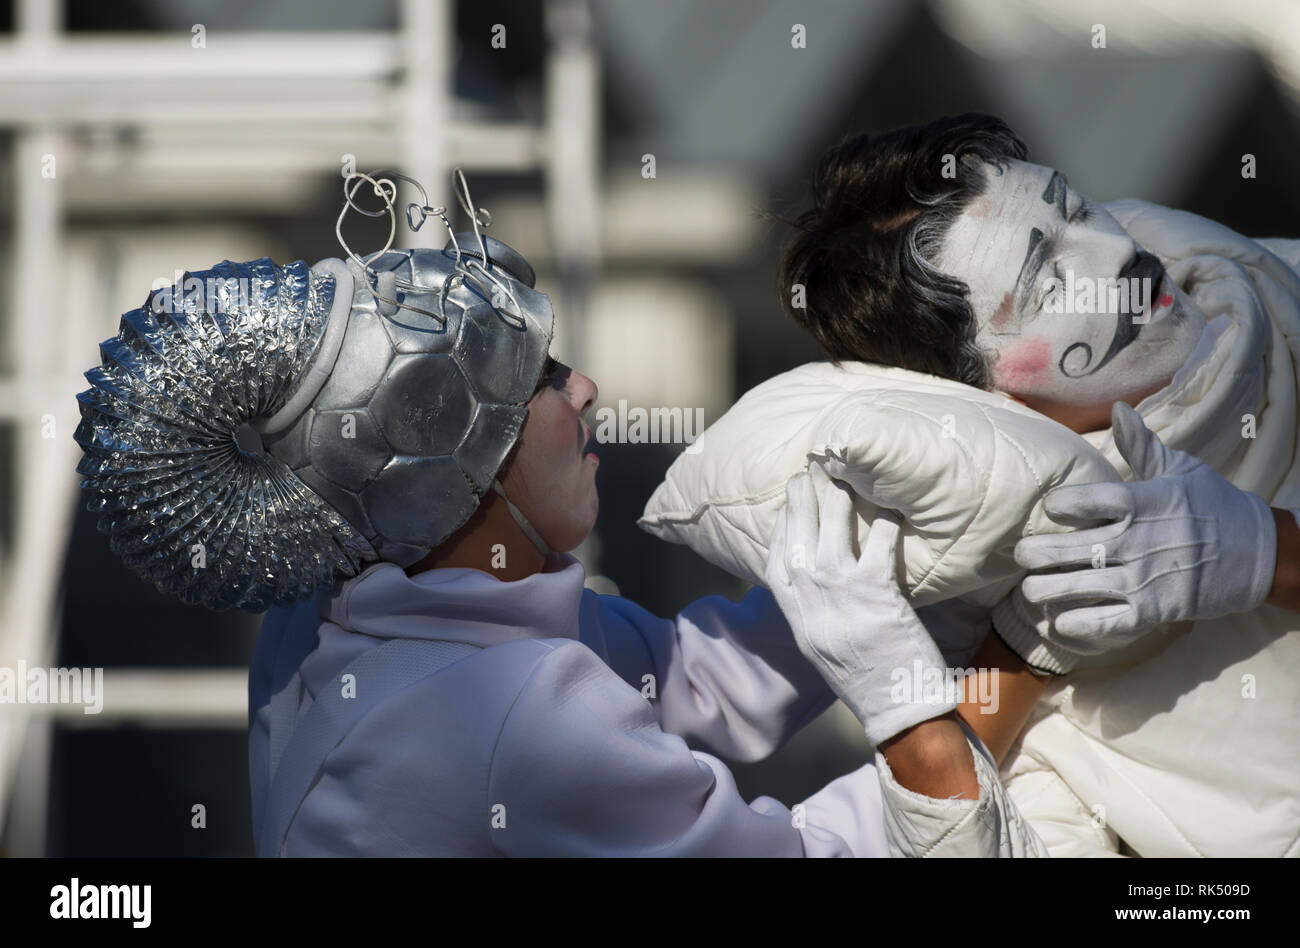 Saint Petersburg, Russia - August 4, 2018: International festival of street theatres `Elagin Park`. A man with a mustache is helped to sleep. - Stock Image